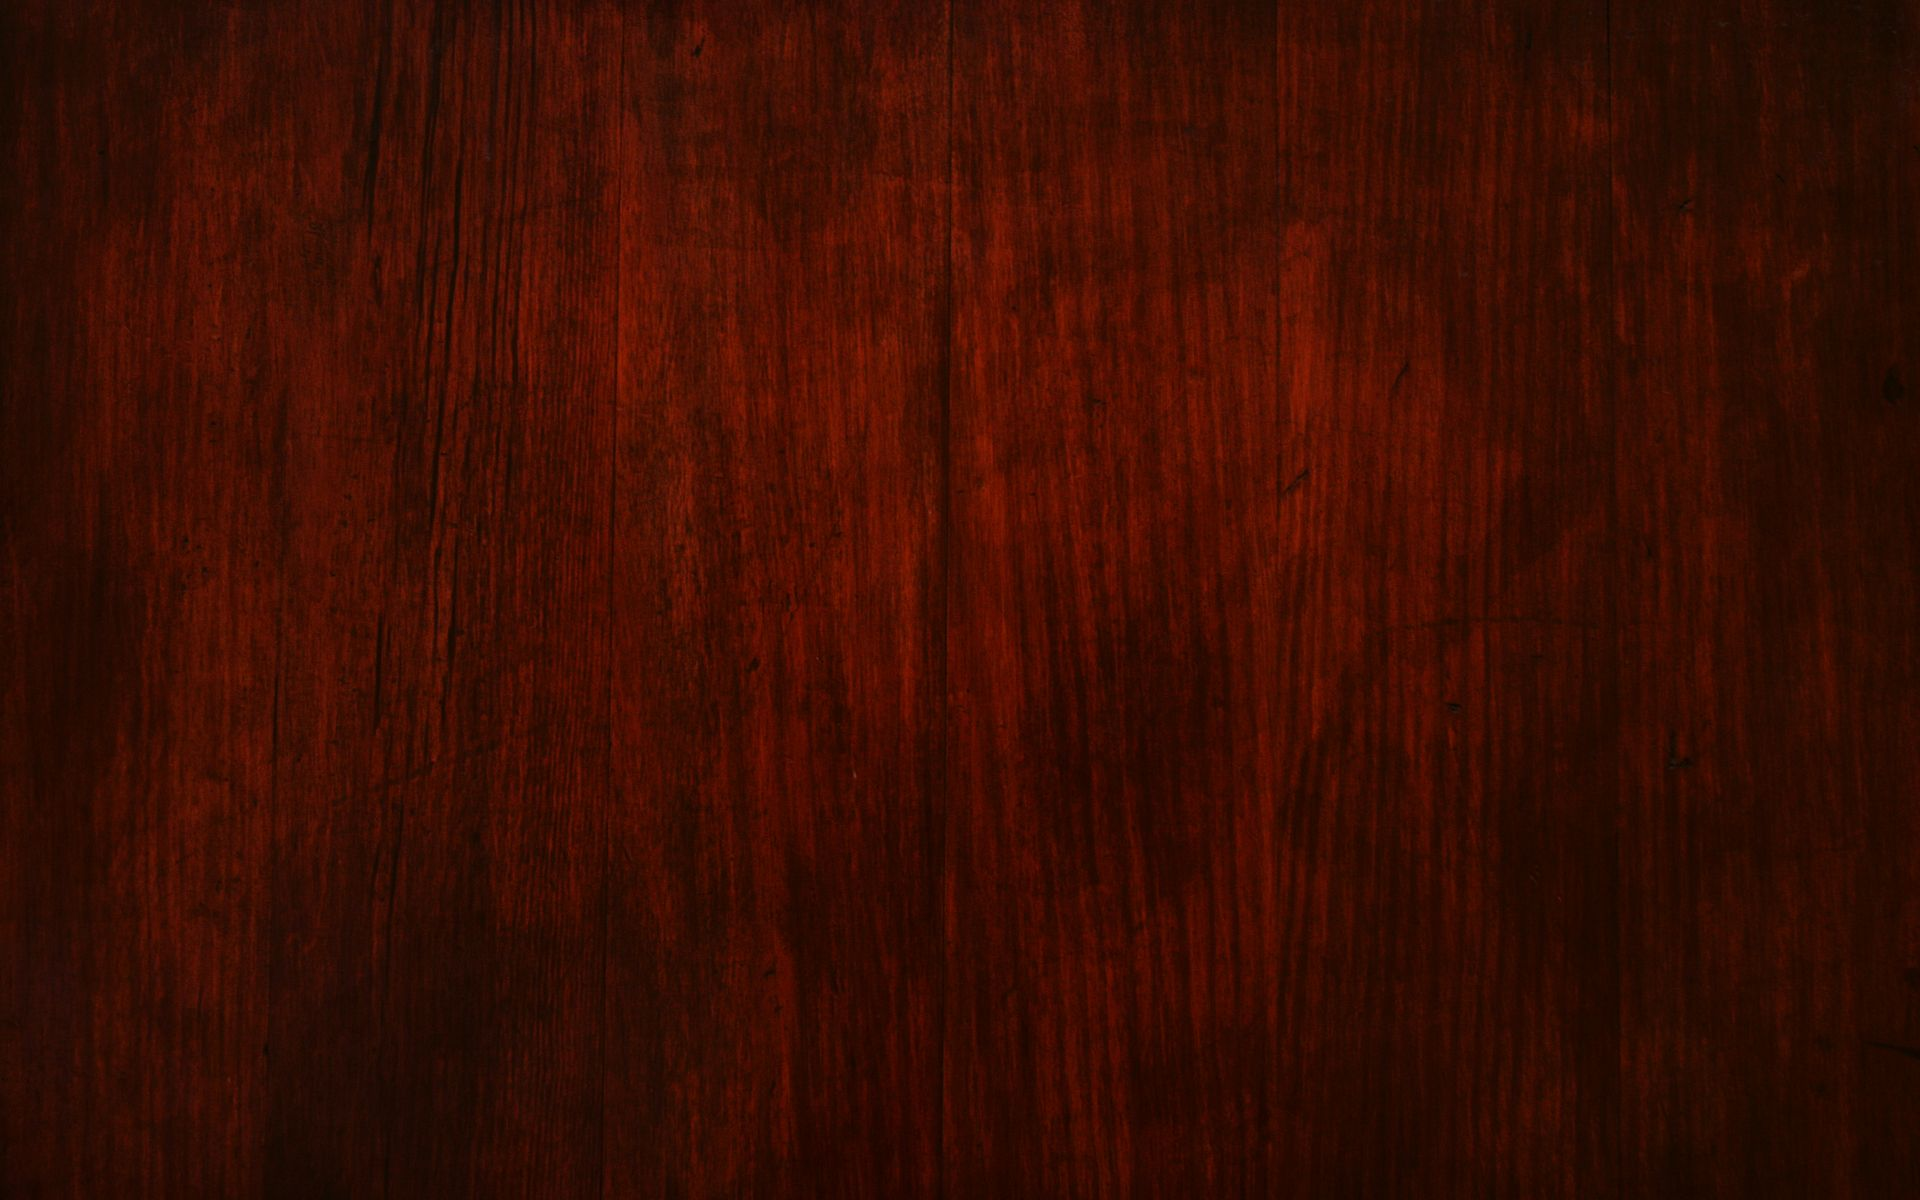 Red Wood Young Textures Texture Simple Background 1920x1200 Wallpaper